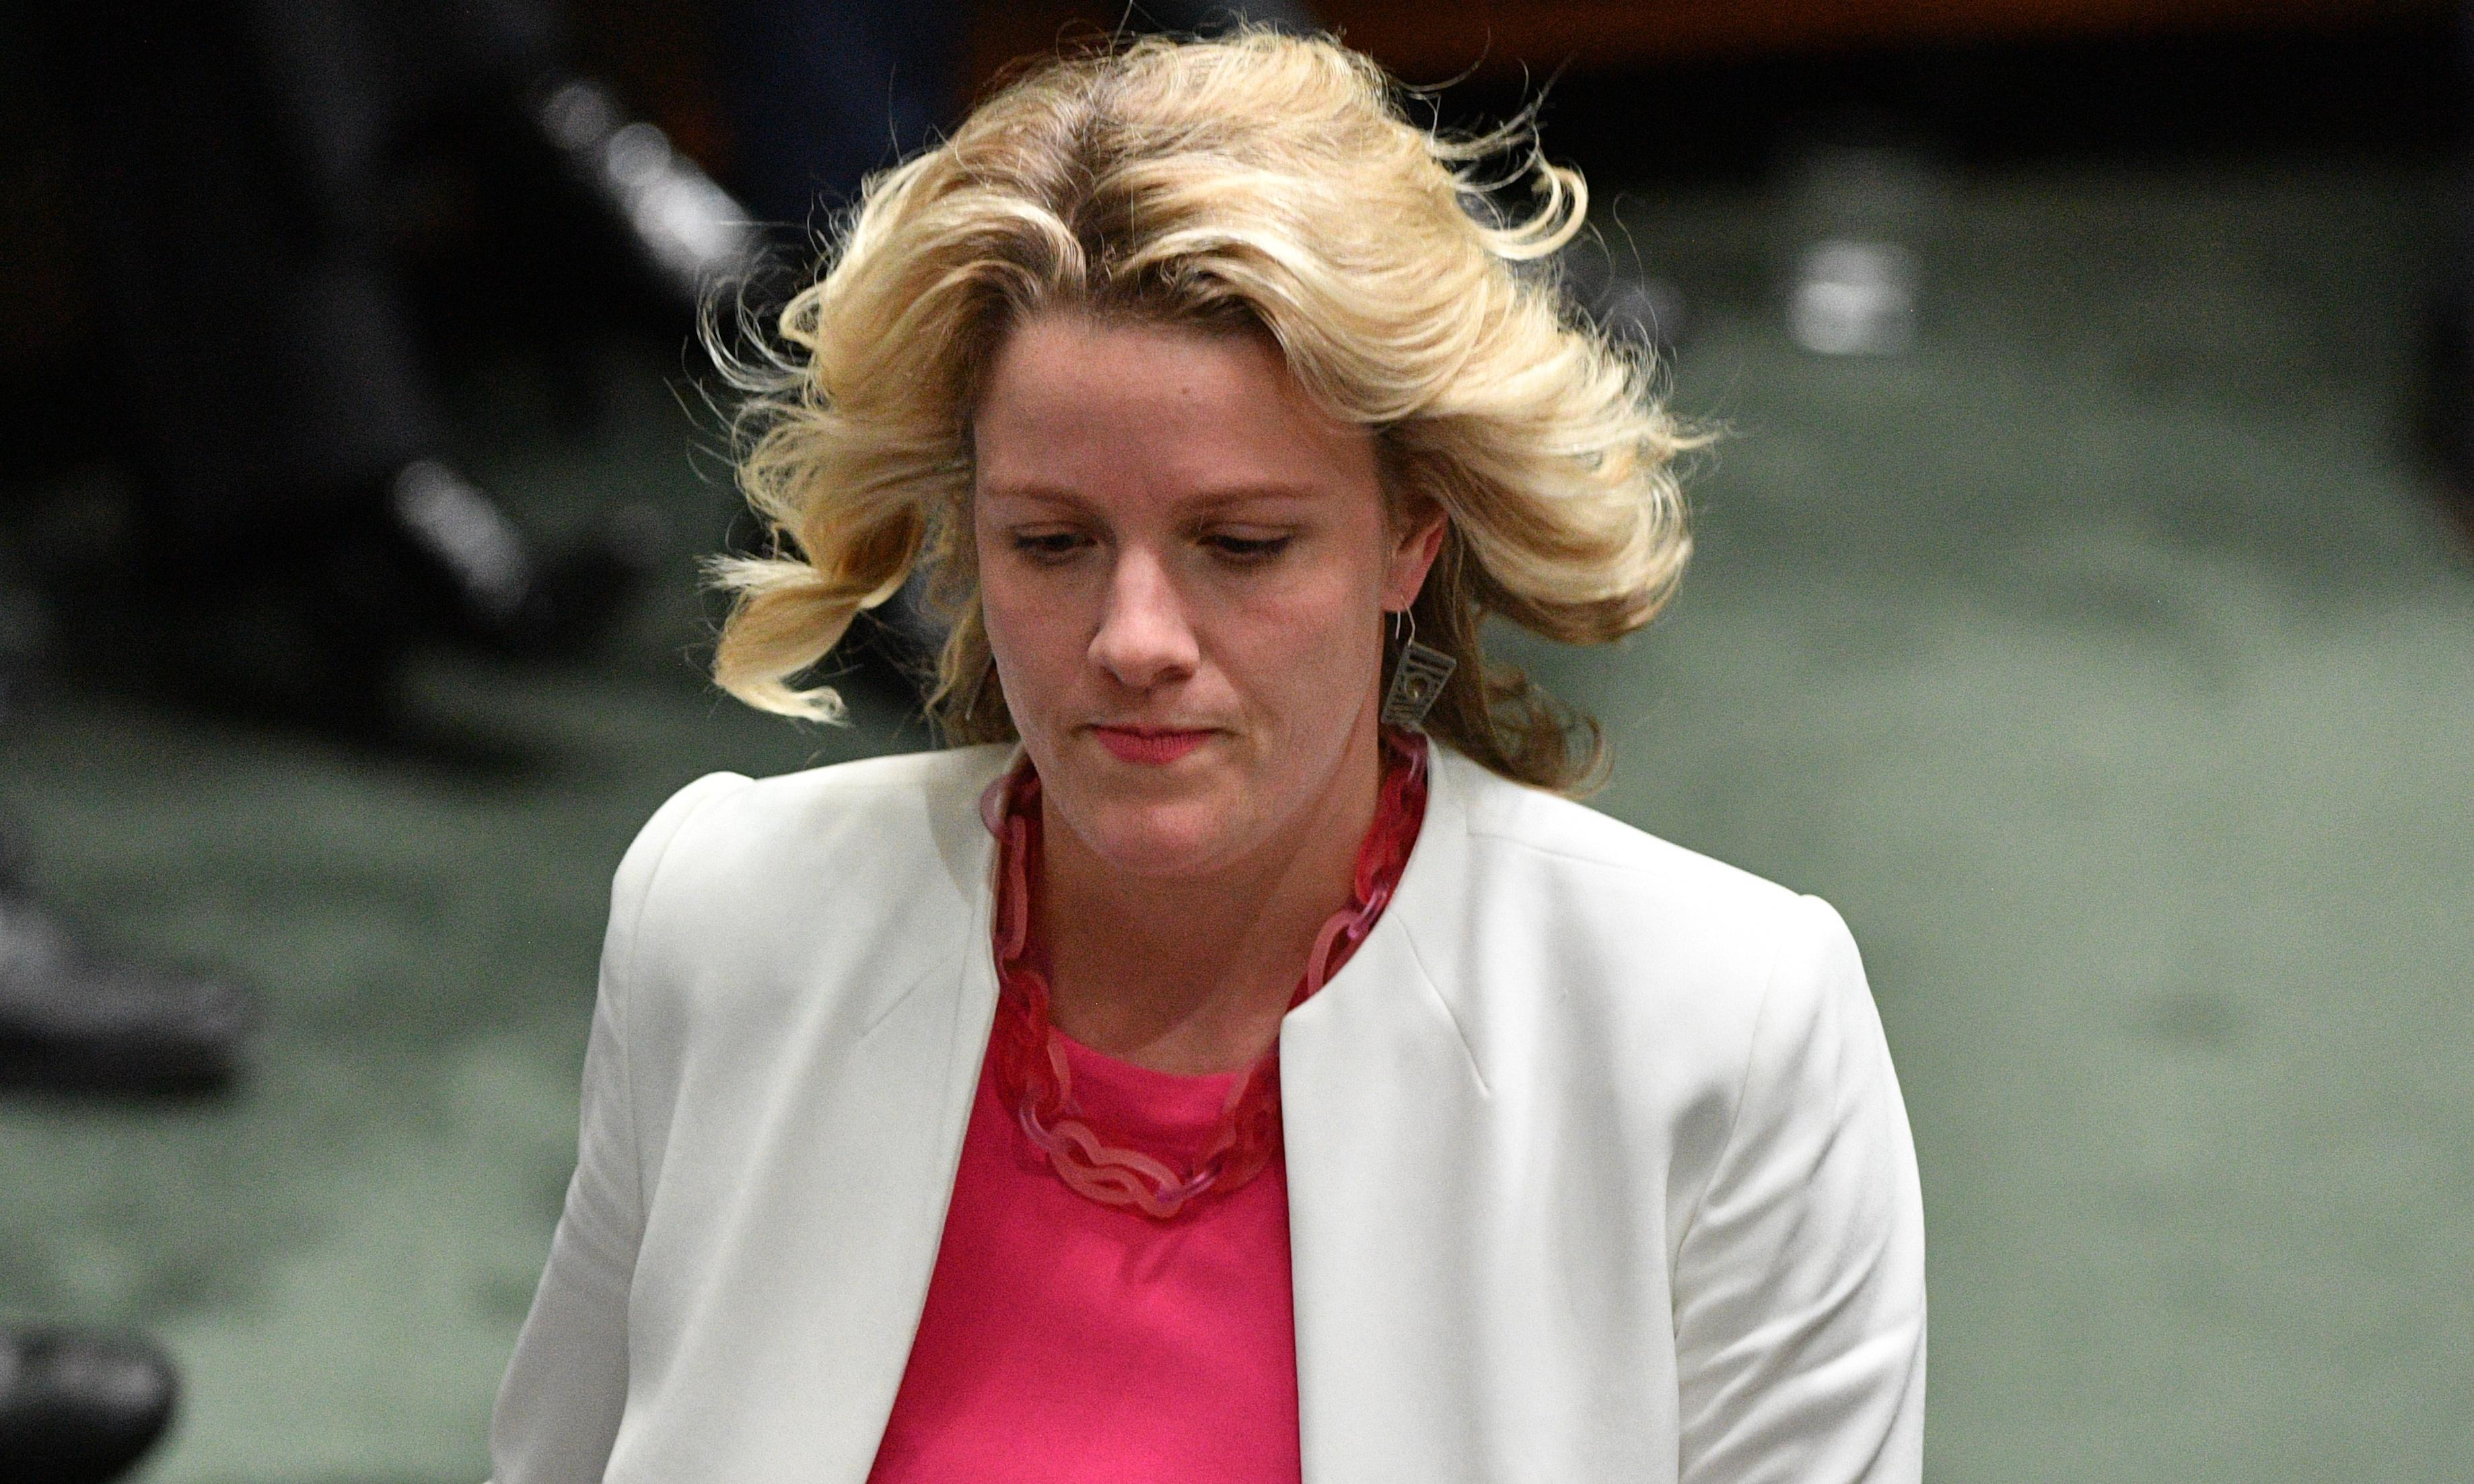 Clare O'Neil rules herself out of Labor deputy leader race, clearing way for Richard Marles